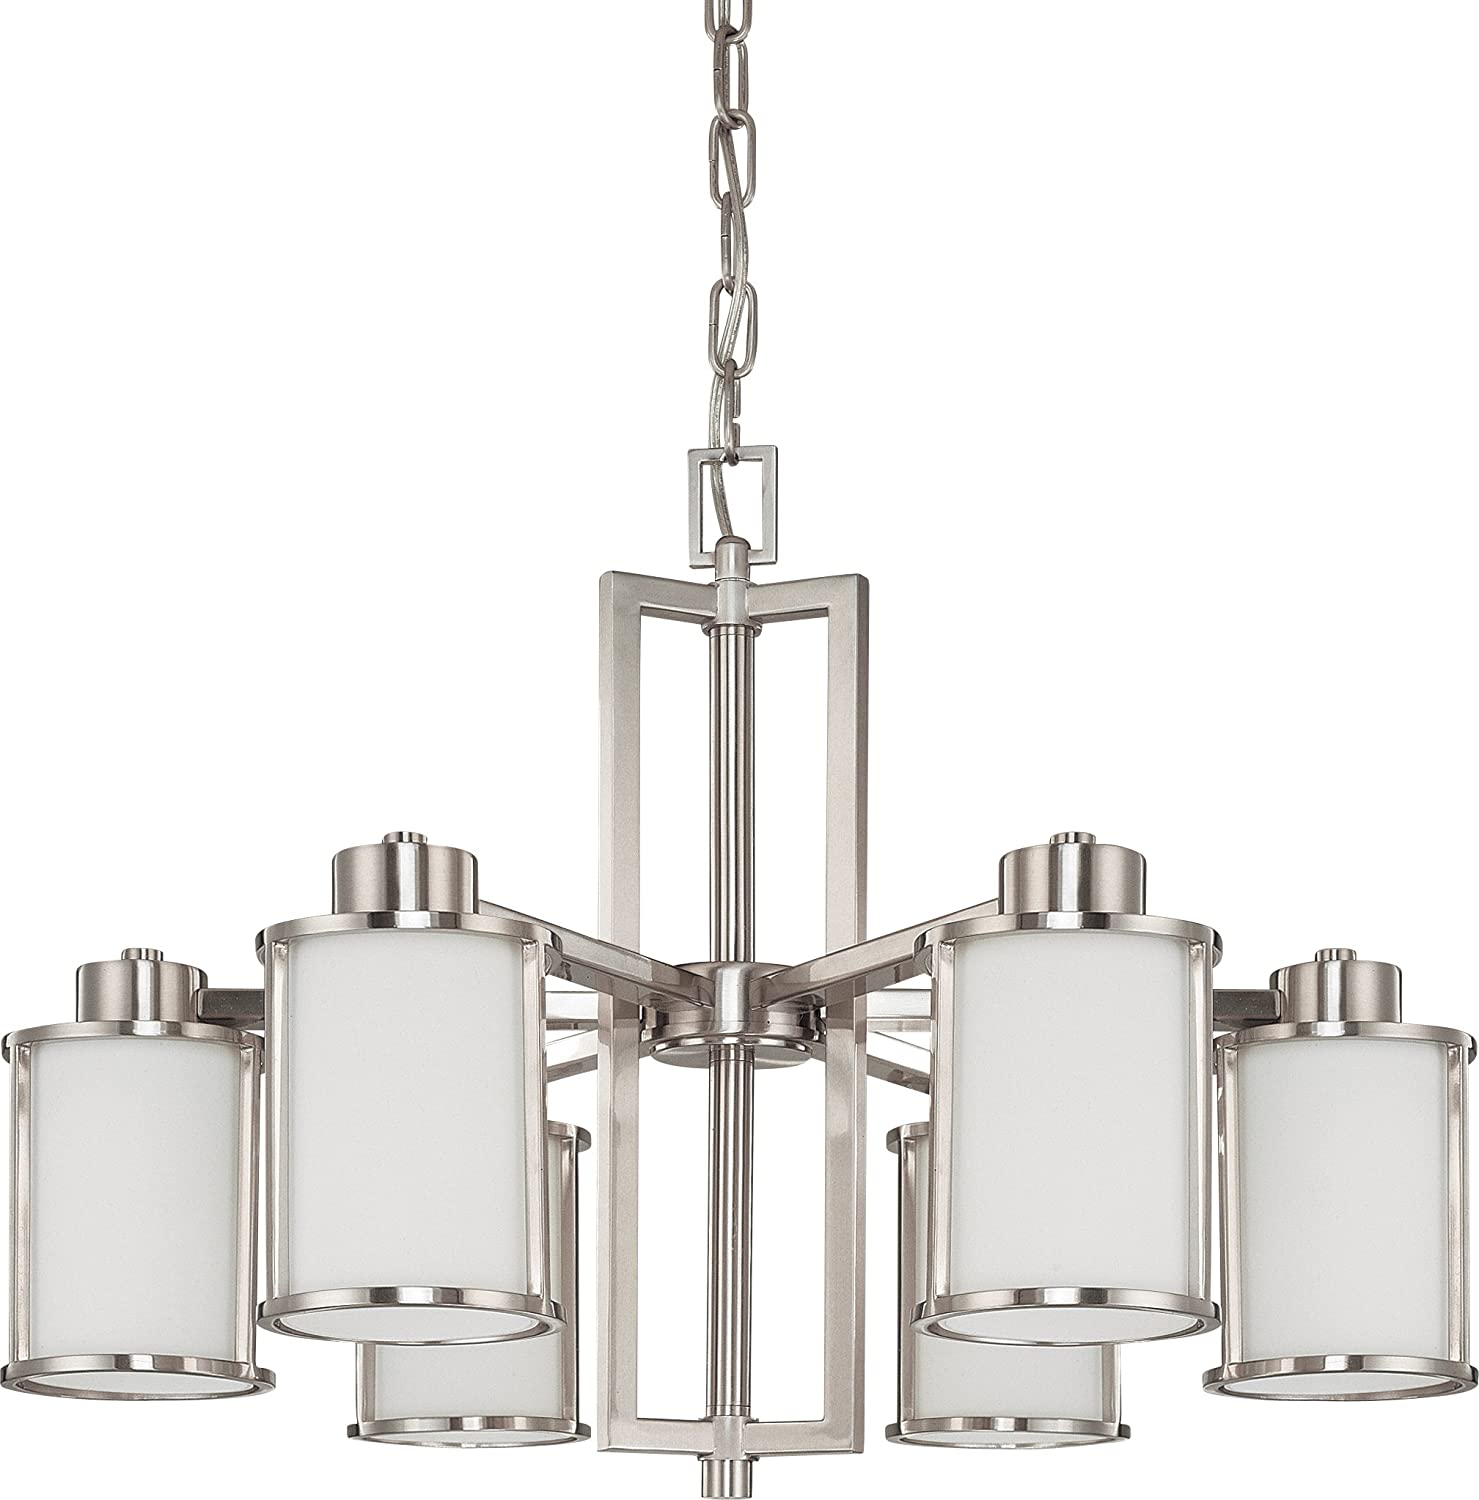 Nuvo Lighting 60/3806 Odeon 6-Light Chandelier with Convertible Arms Up or Down and White Satin Glass Brushed Nickel - - Amazon.com  sc 1 st  Amazon.com : brushed nickel chandelier lighting - azcodes.com